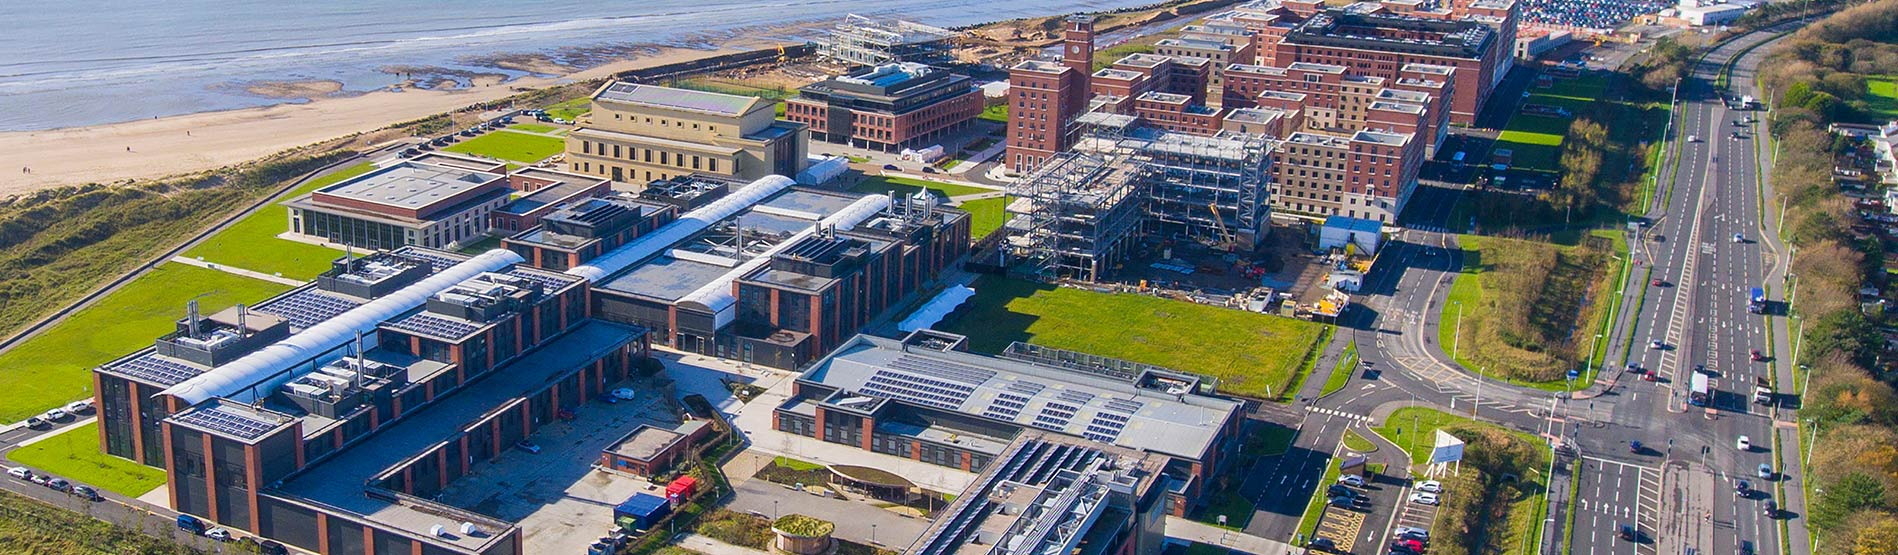 Birds eye view of the bay campus.